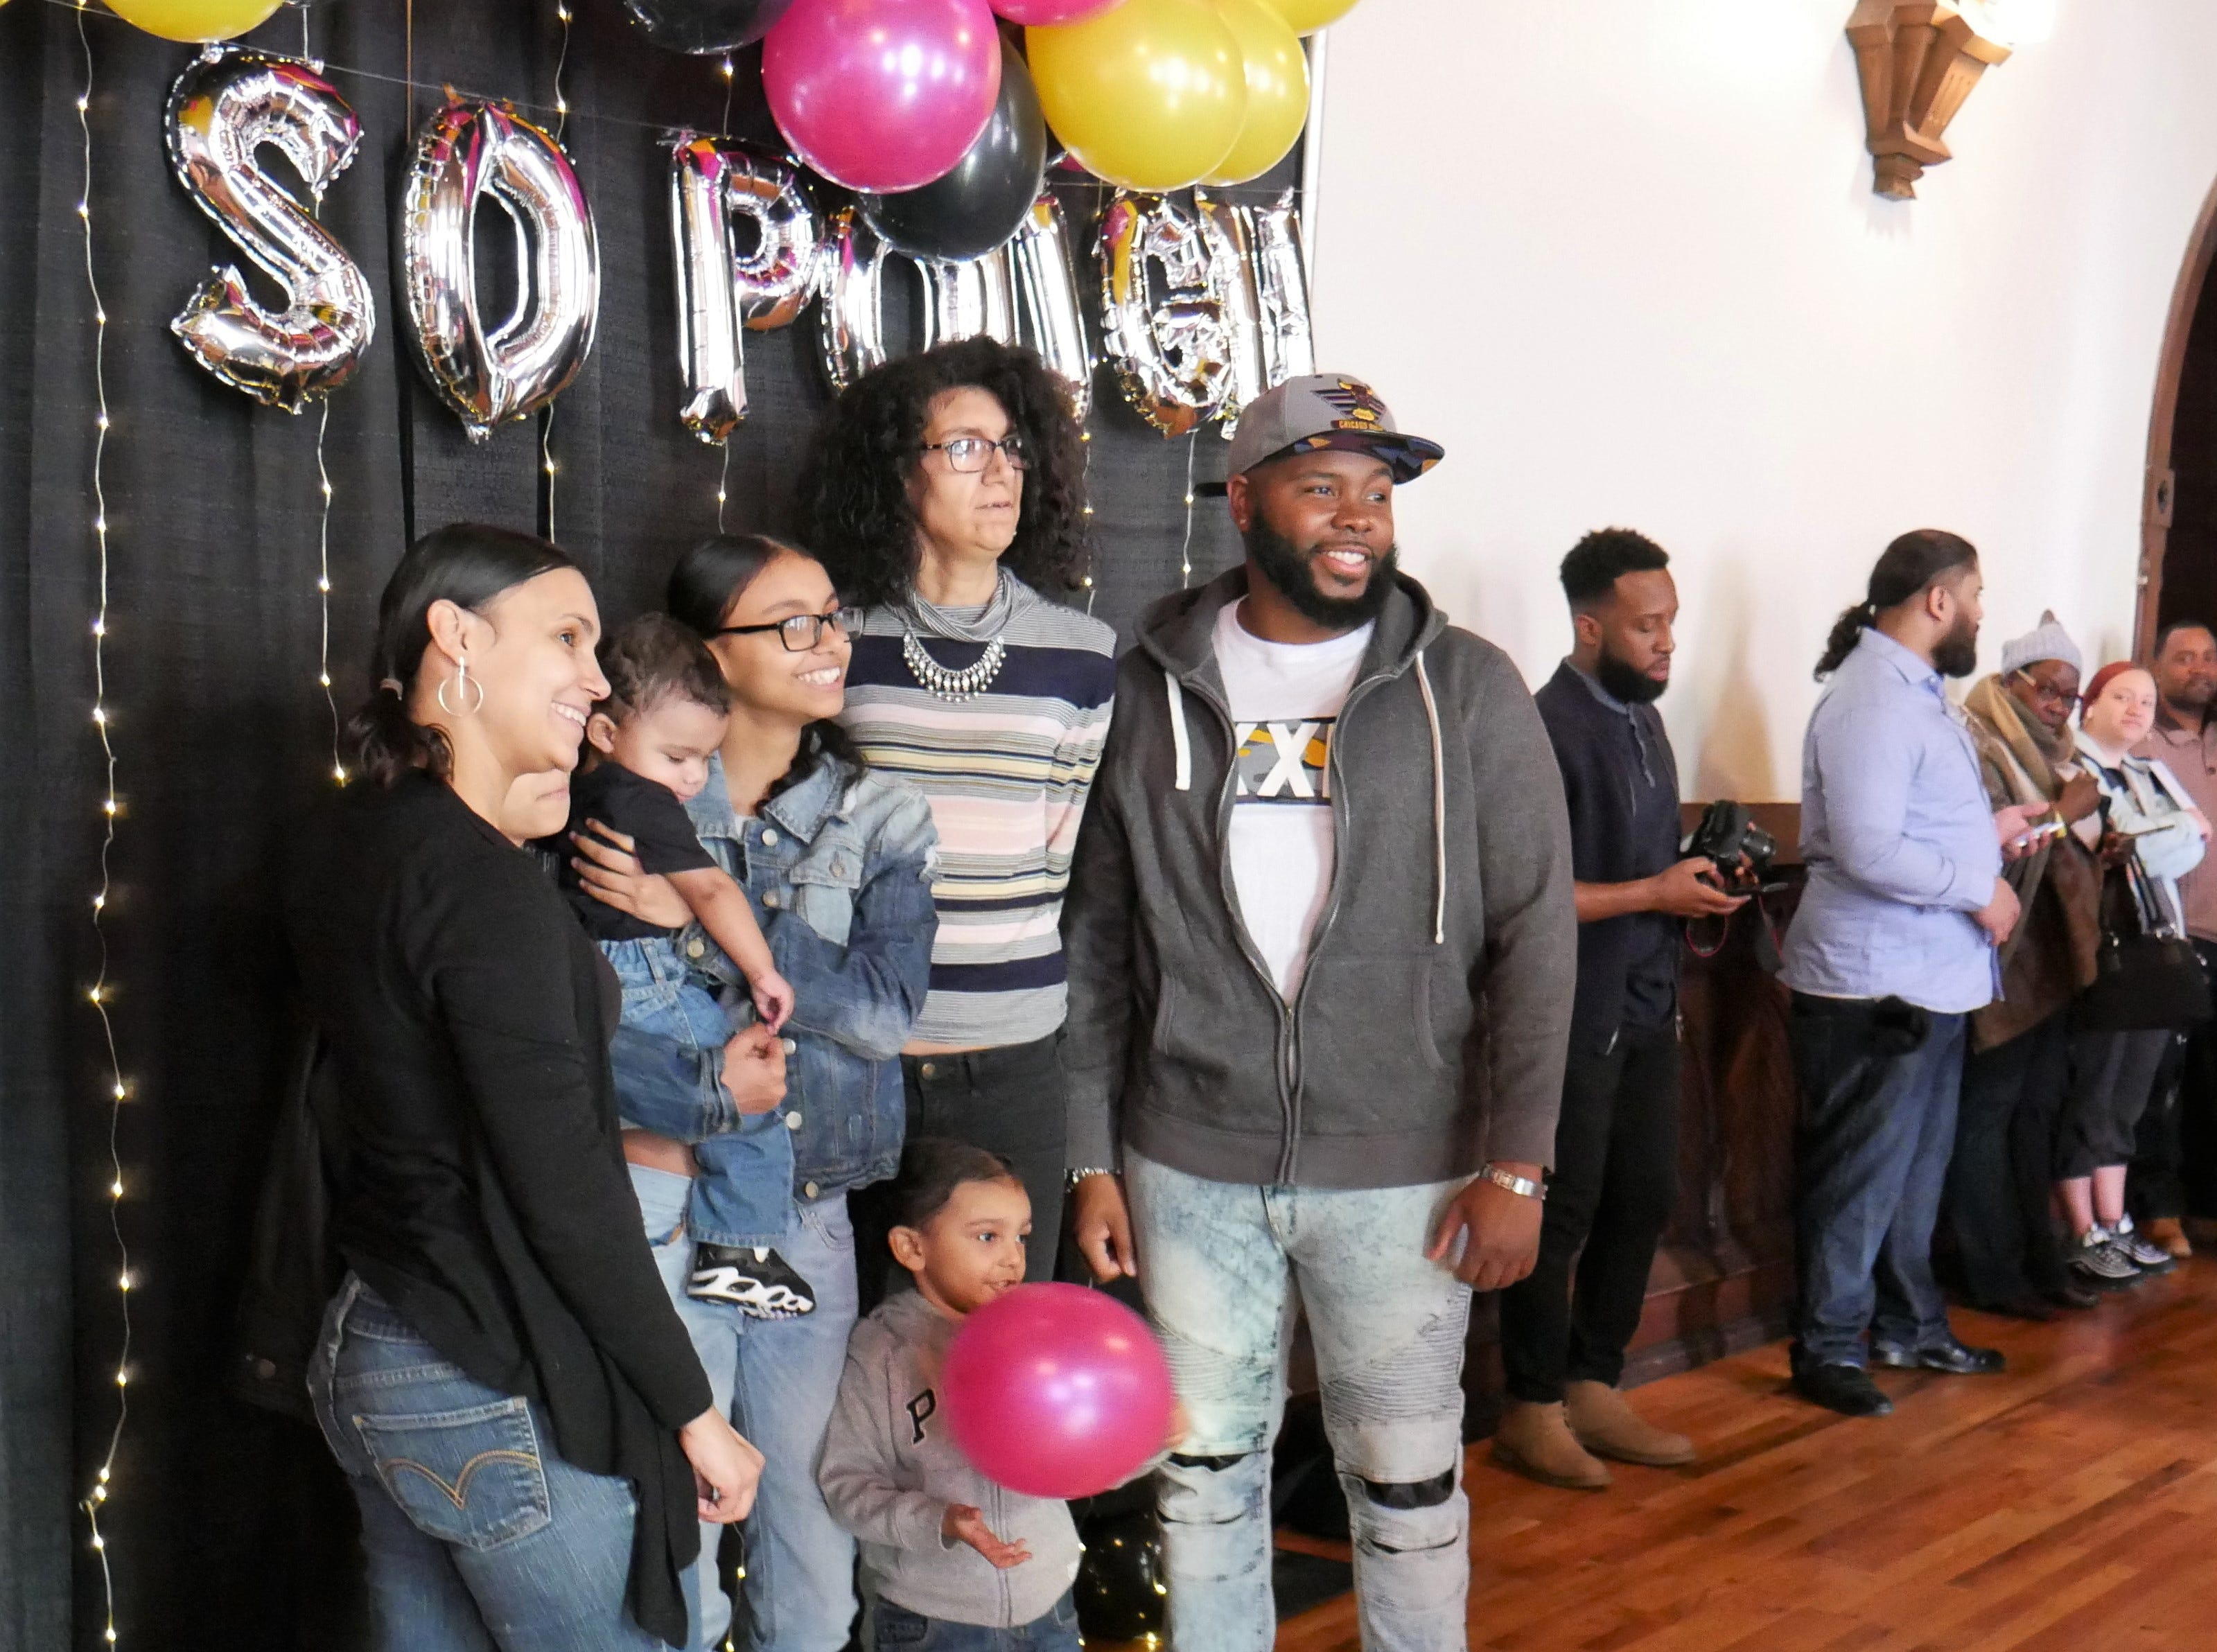 """That's So Pough! A Celebration of Poughkeepsie Youth Culture"" kicked off on Feb. 16, 2019, an art show, music show and fashion show all rolled into one. The event seeks to engage students in celebrating the City of Poughkeepsie's culture and ways in which they contribute to its future."